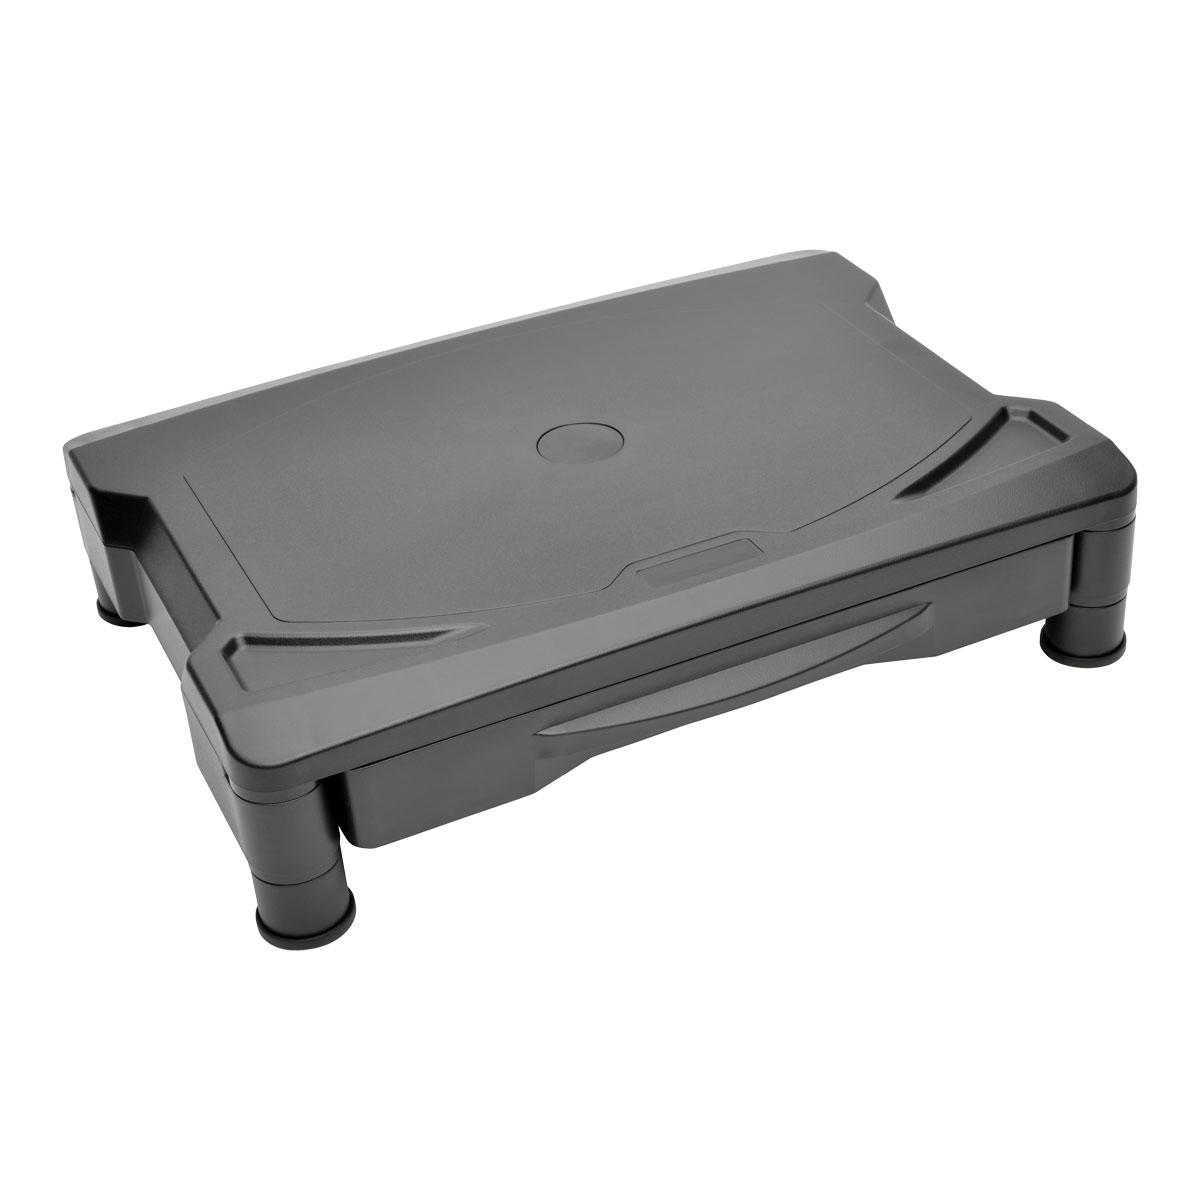 LCD Monitor Riser Printer Monitor Stand with Storage Drawer 4.7In - Printer or monitor stand with drawer - black